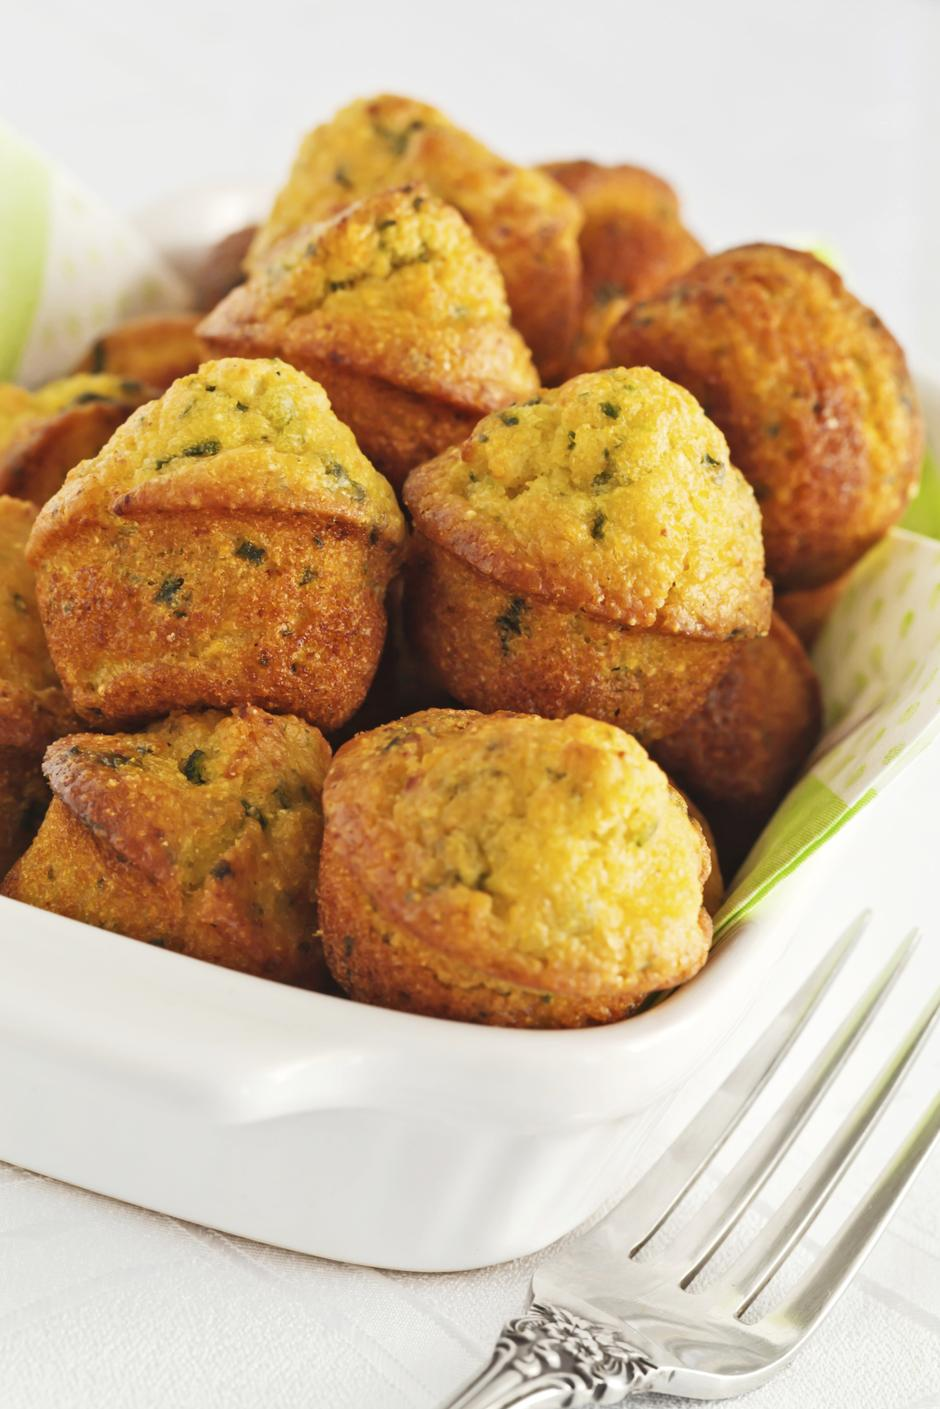 muffini s tikvicama | Author: Thinkstock